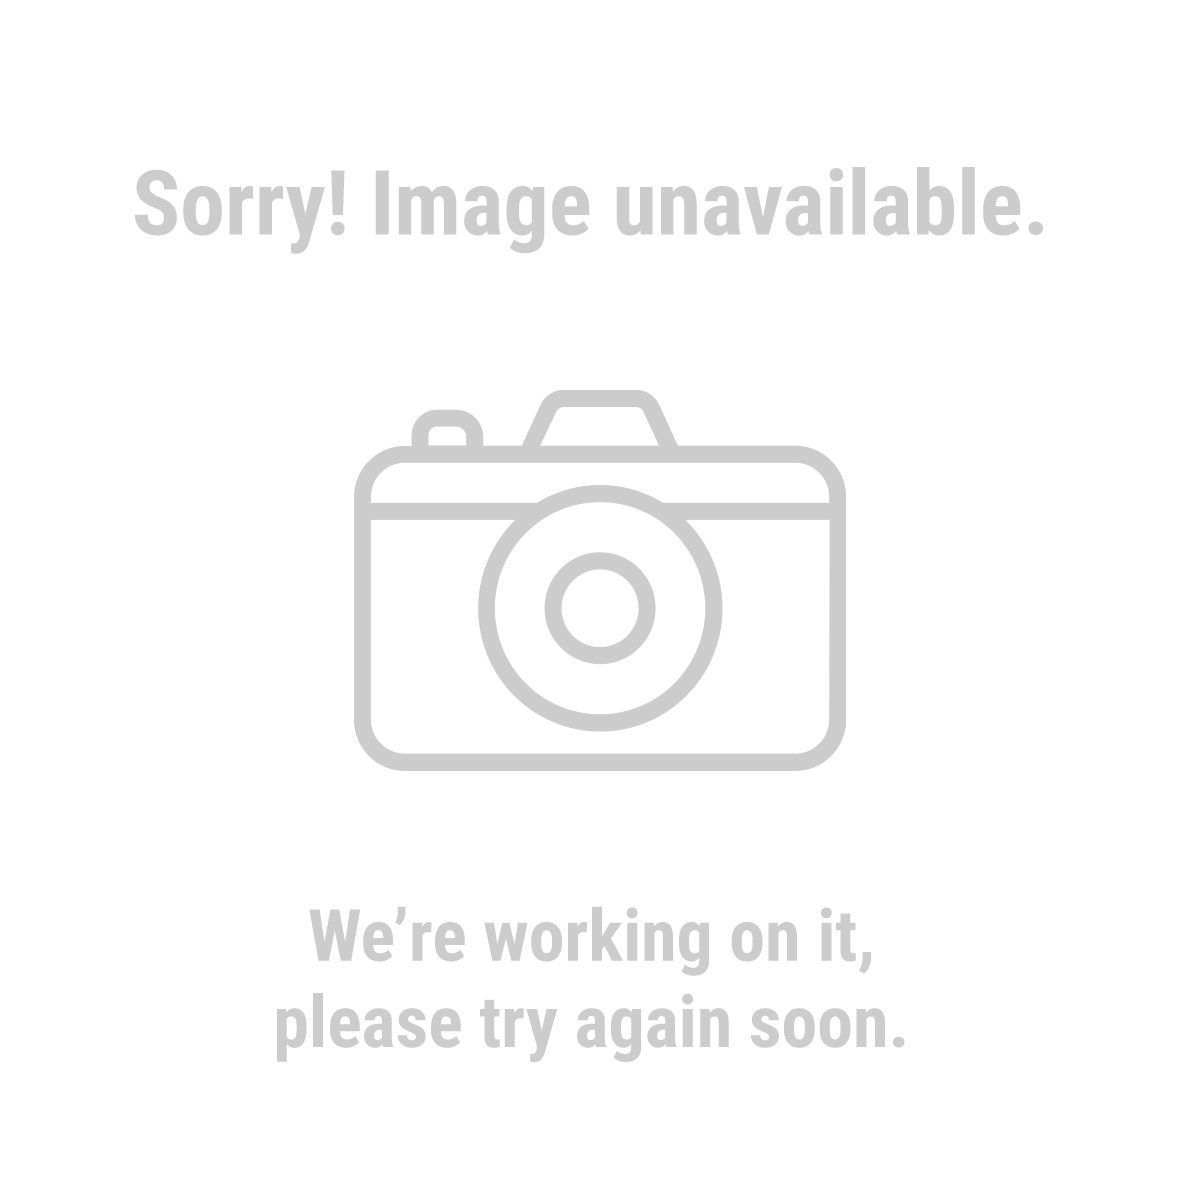 Warrior 61560 3 in. Coarse Grade Fiber Surface Conditioning Discs 5 Pc